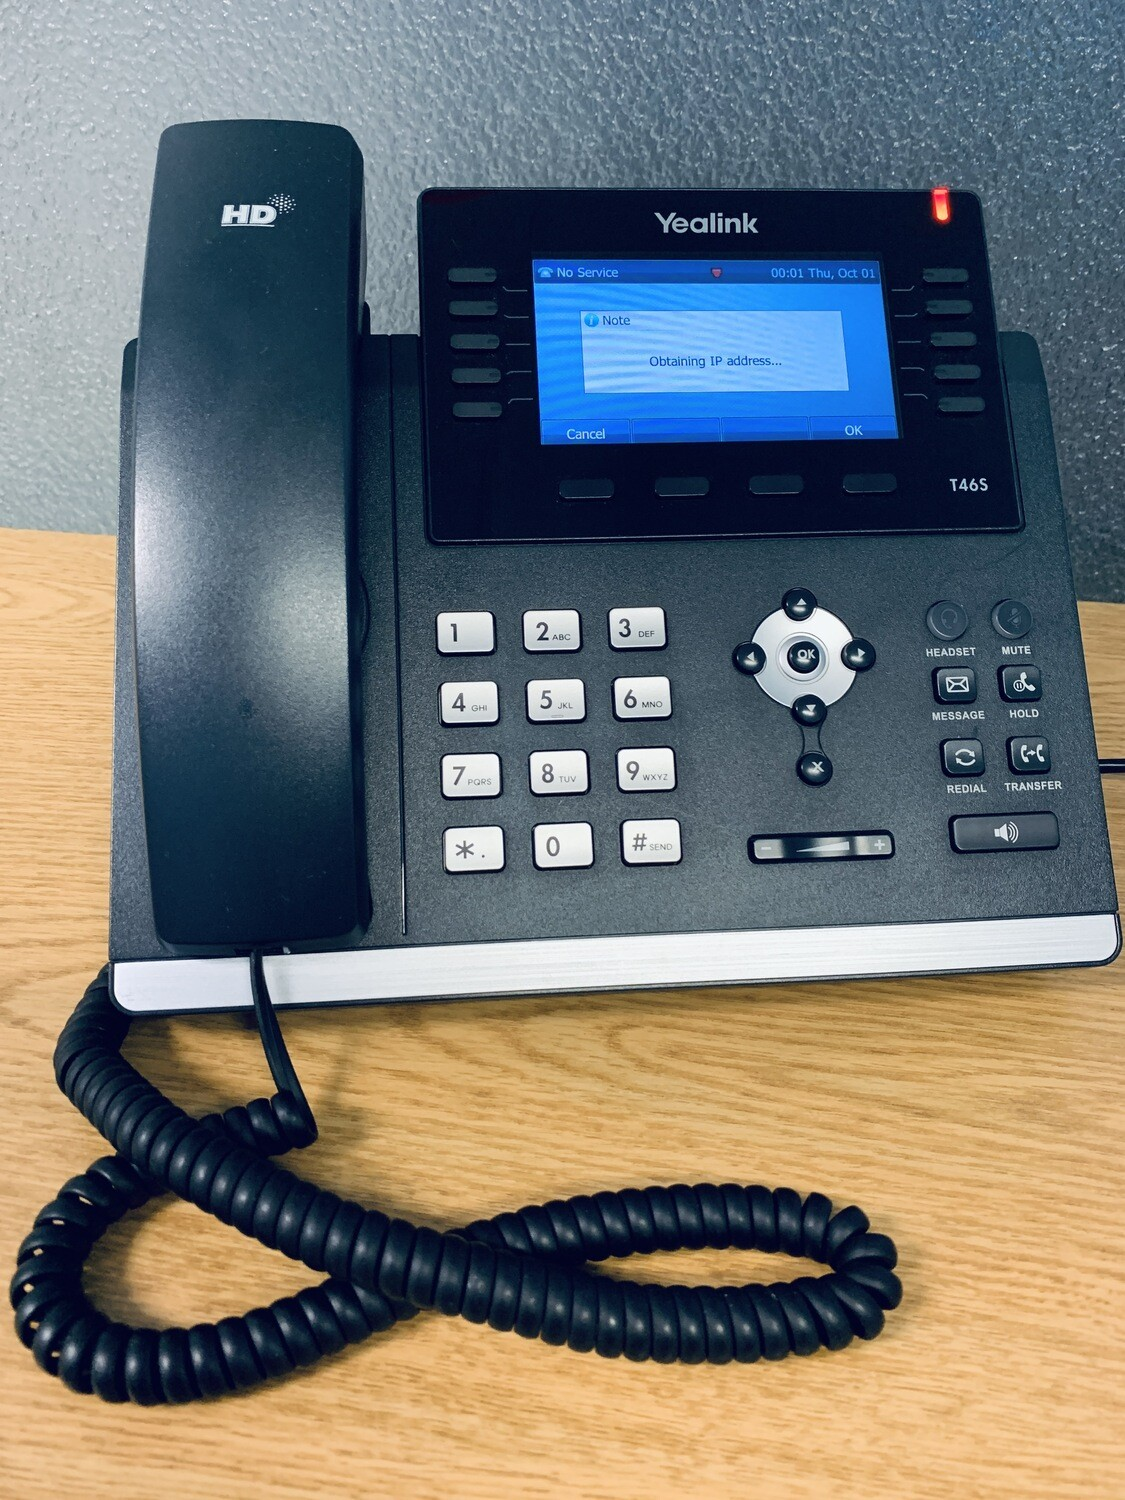 Yealink T46S VoIP telephone